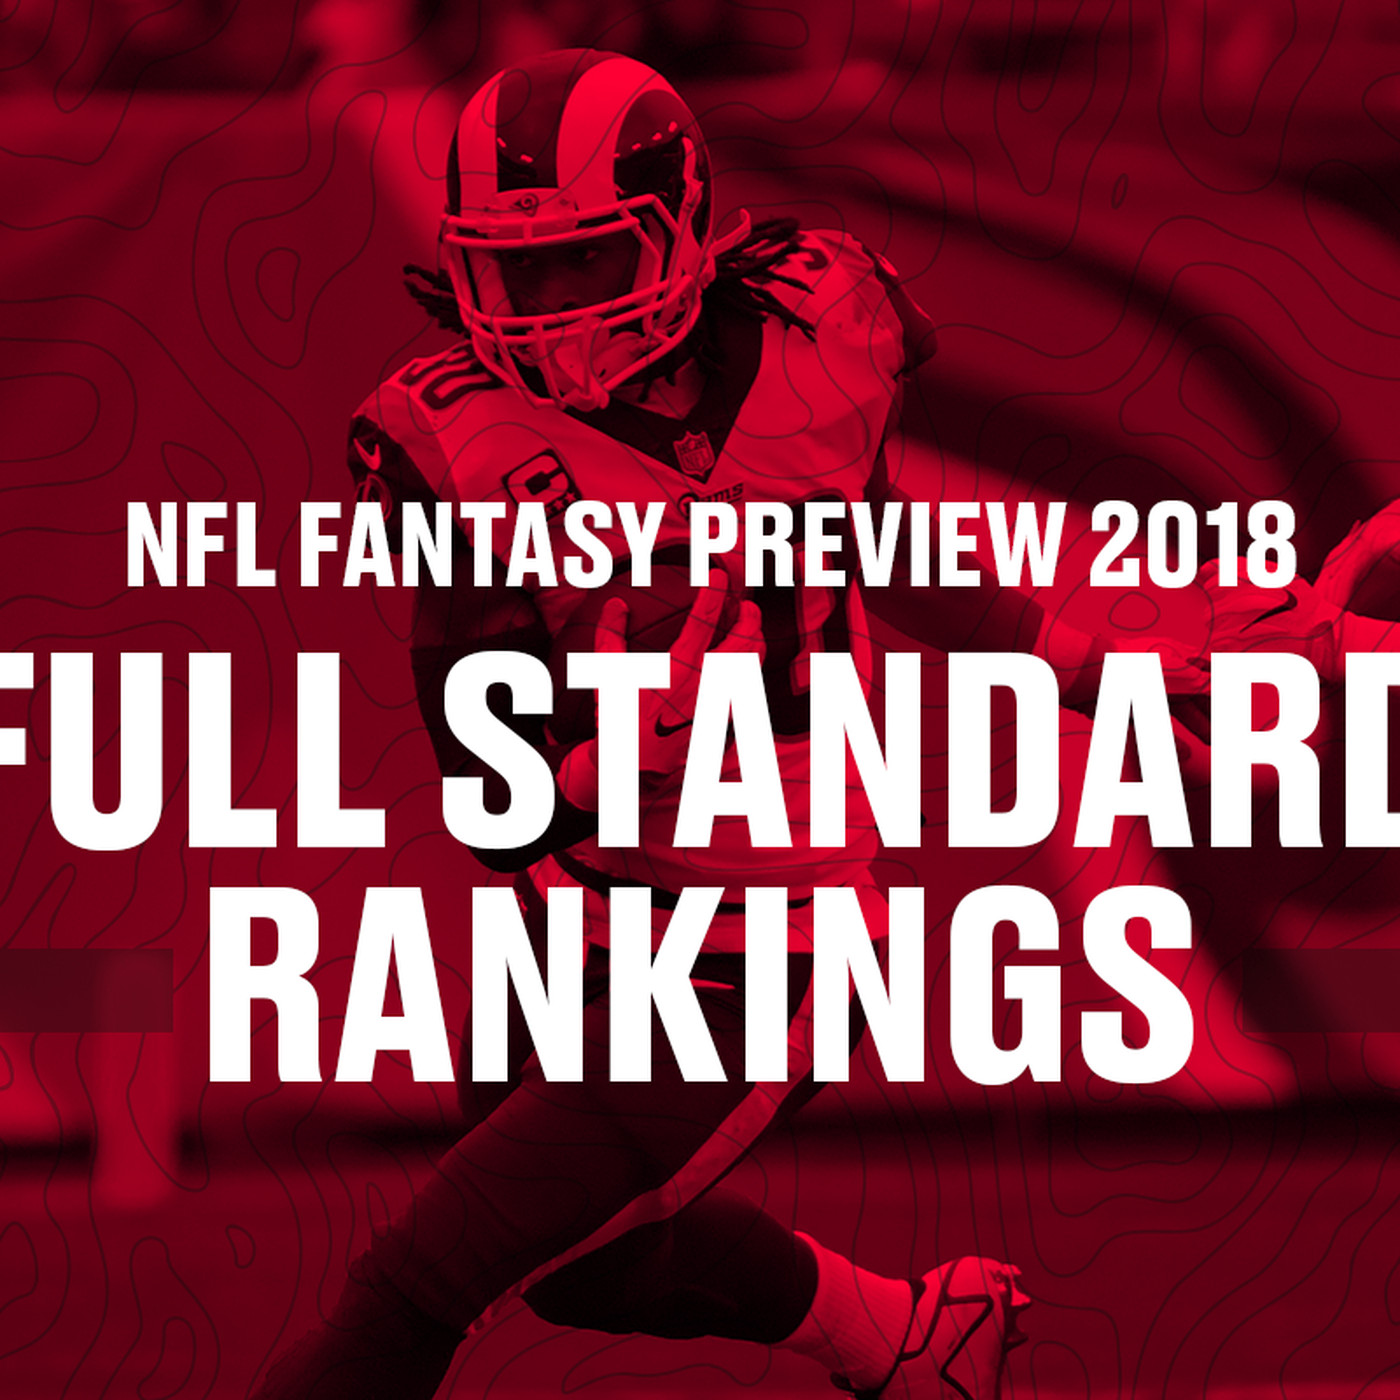 Fantasy football rankings 2018: The top 150 players in